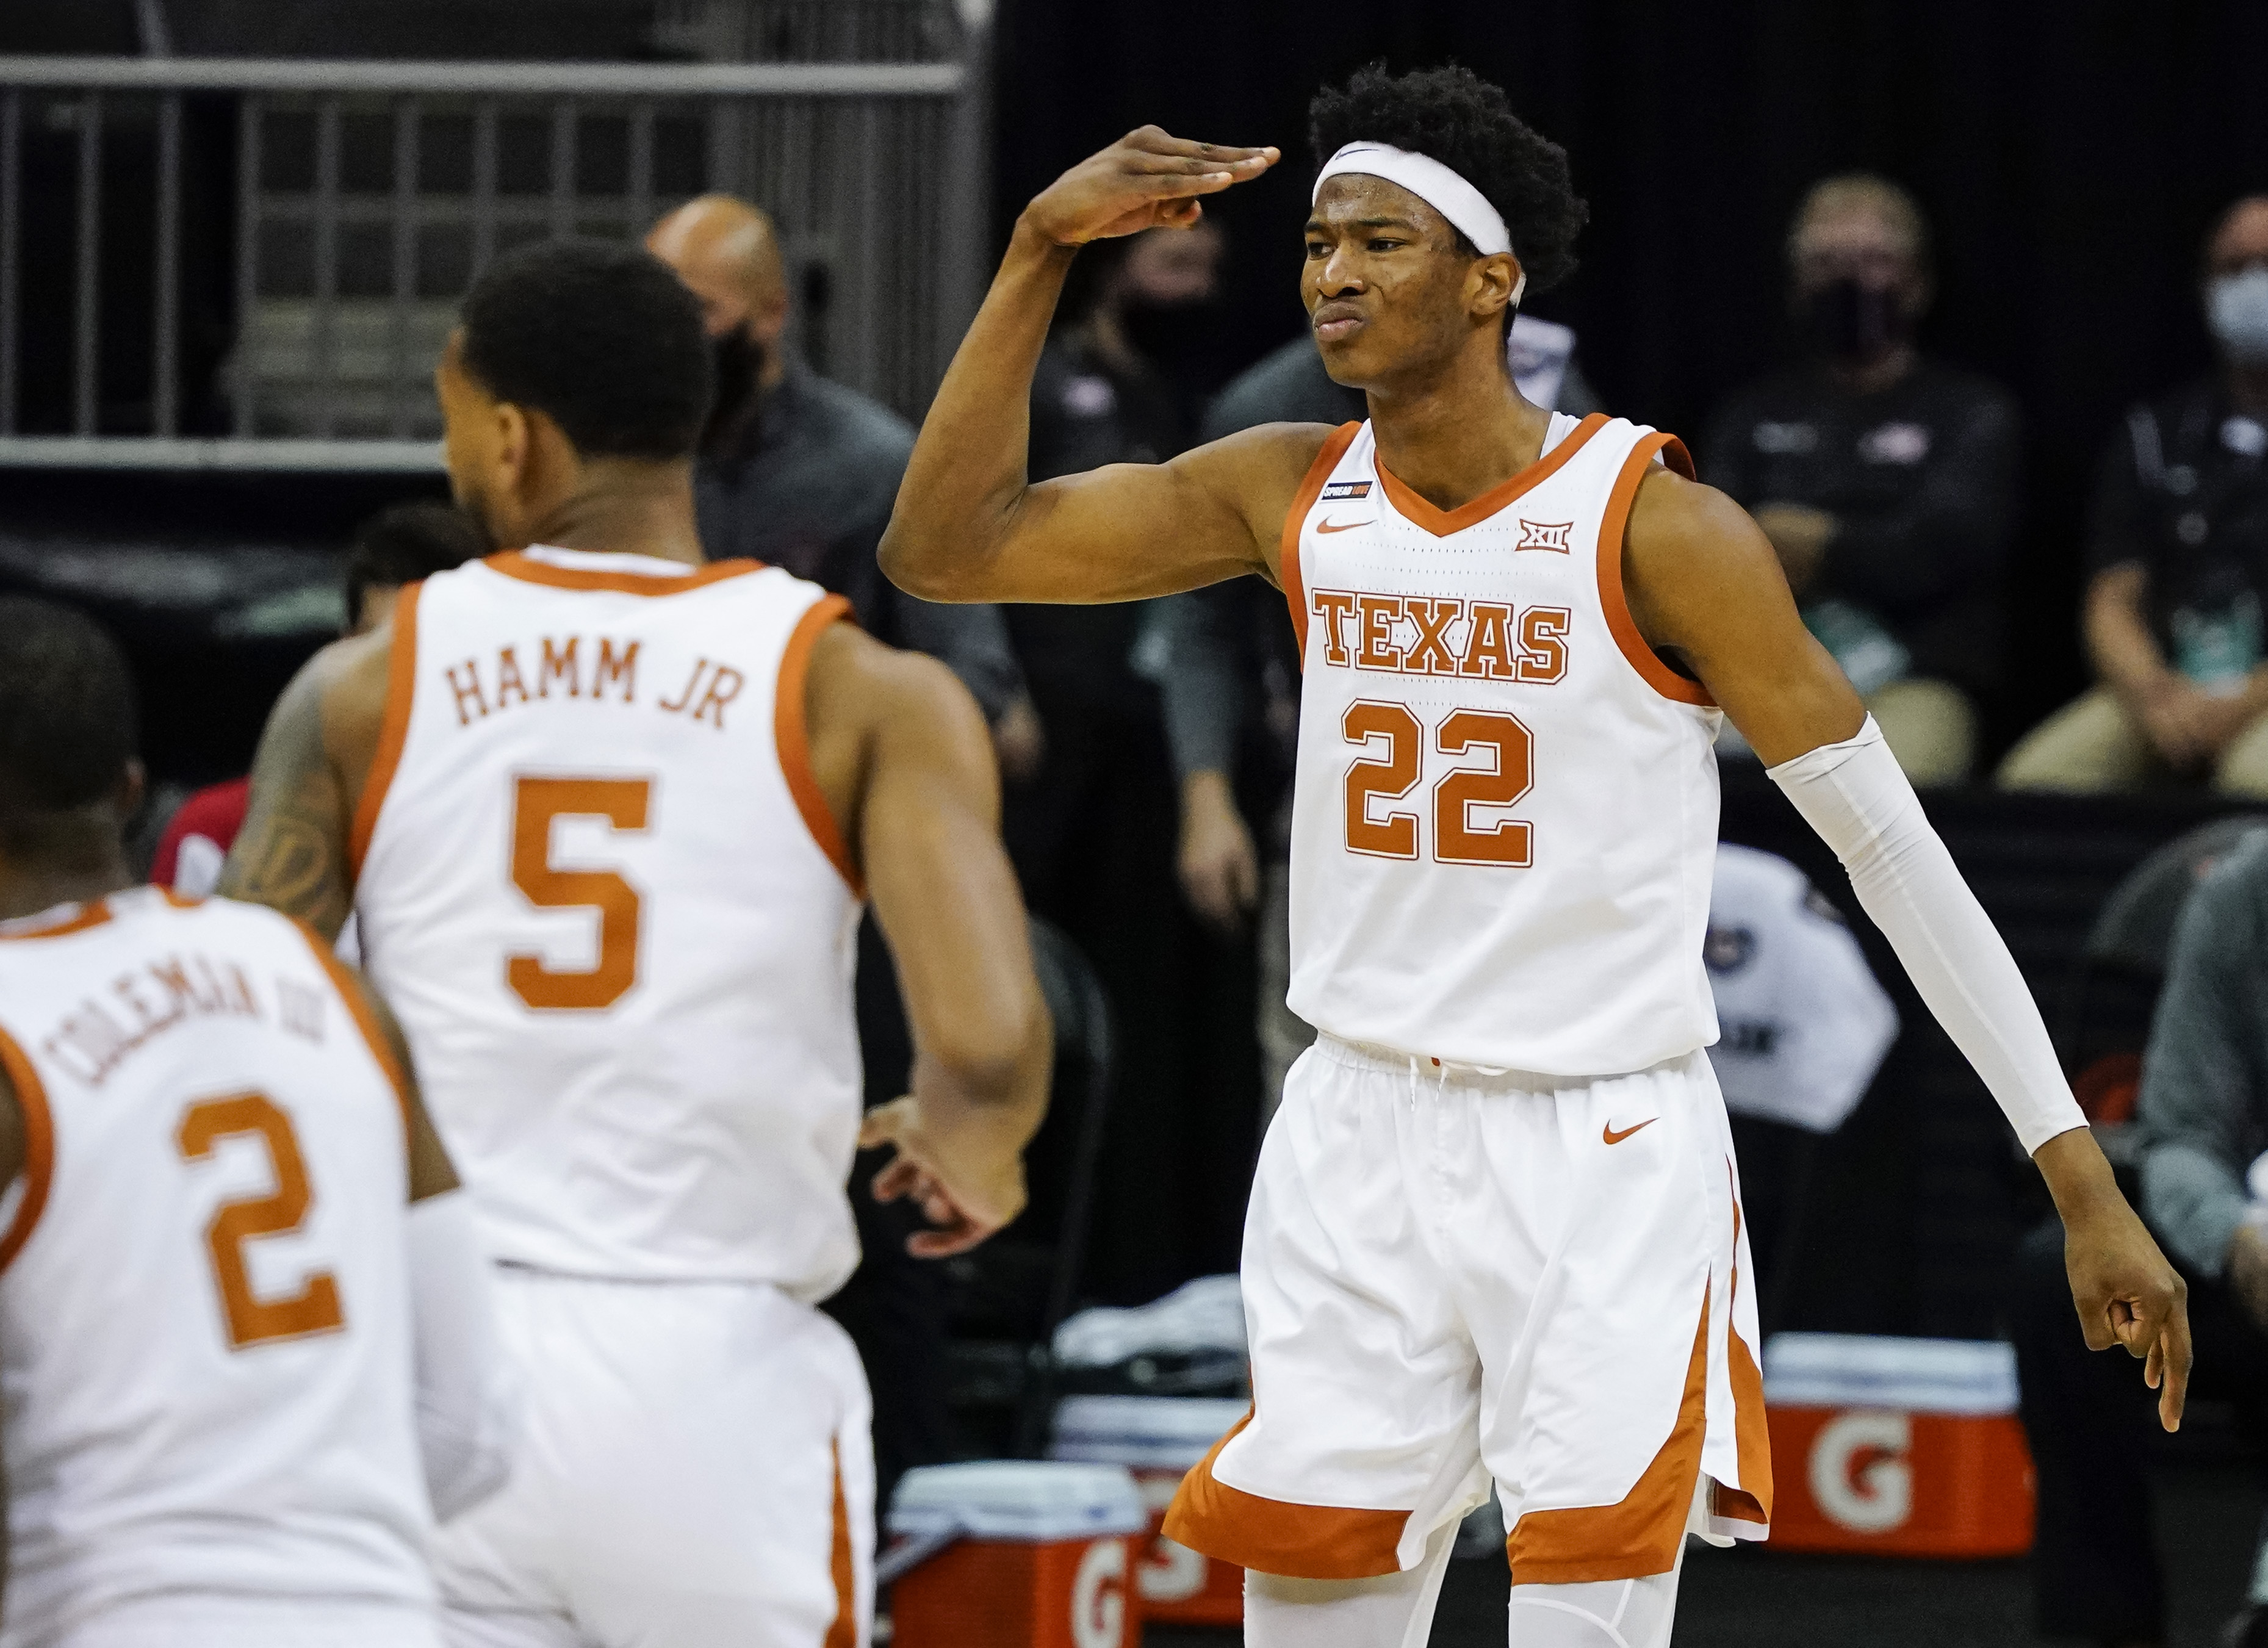 Texas Longhorns forward Kai Jones (22) celebrates after scoring against the Texas Tech Red Raiders during the second half at T-Mobile Center.